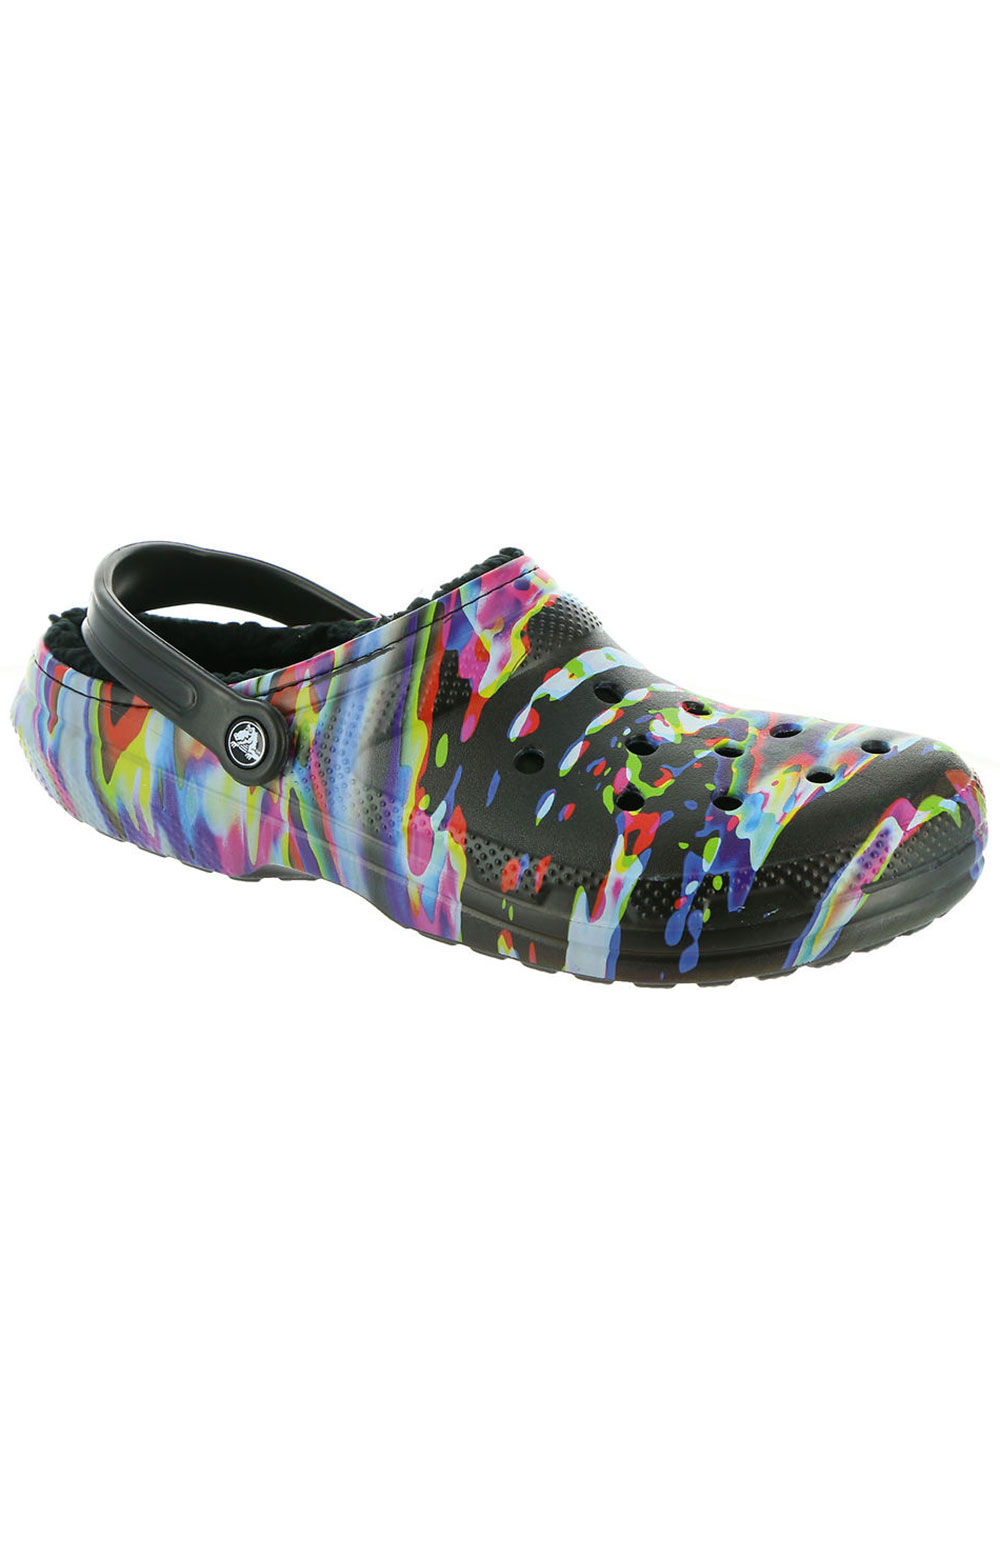 Classic Lined Out Of This World Clogs - Black/Multi